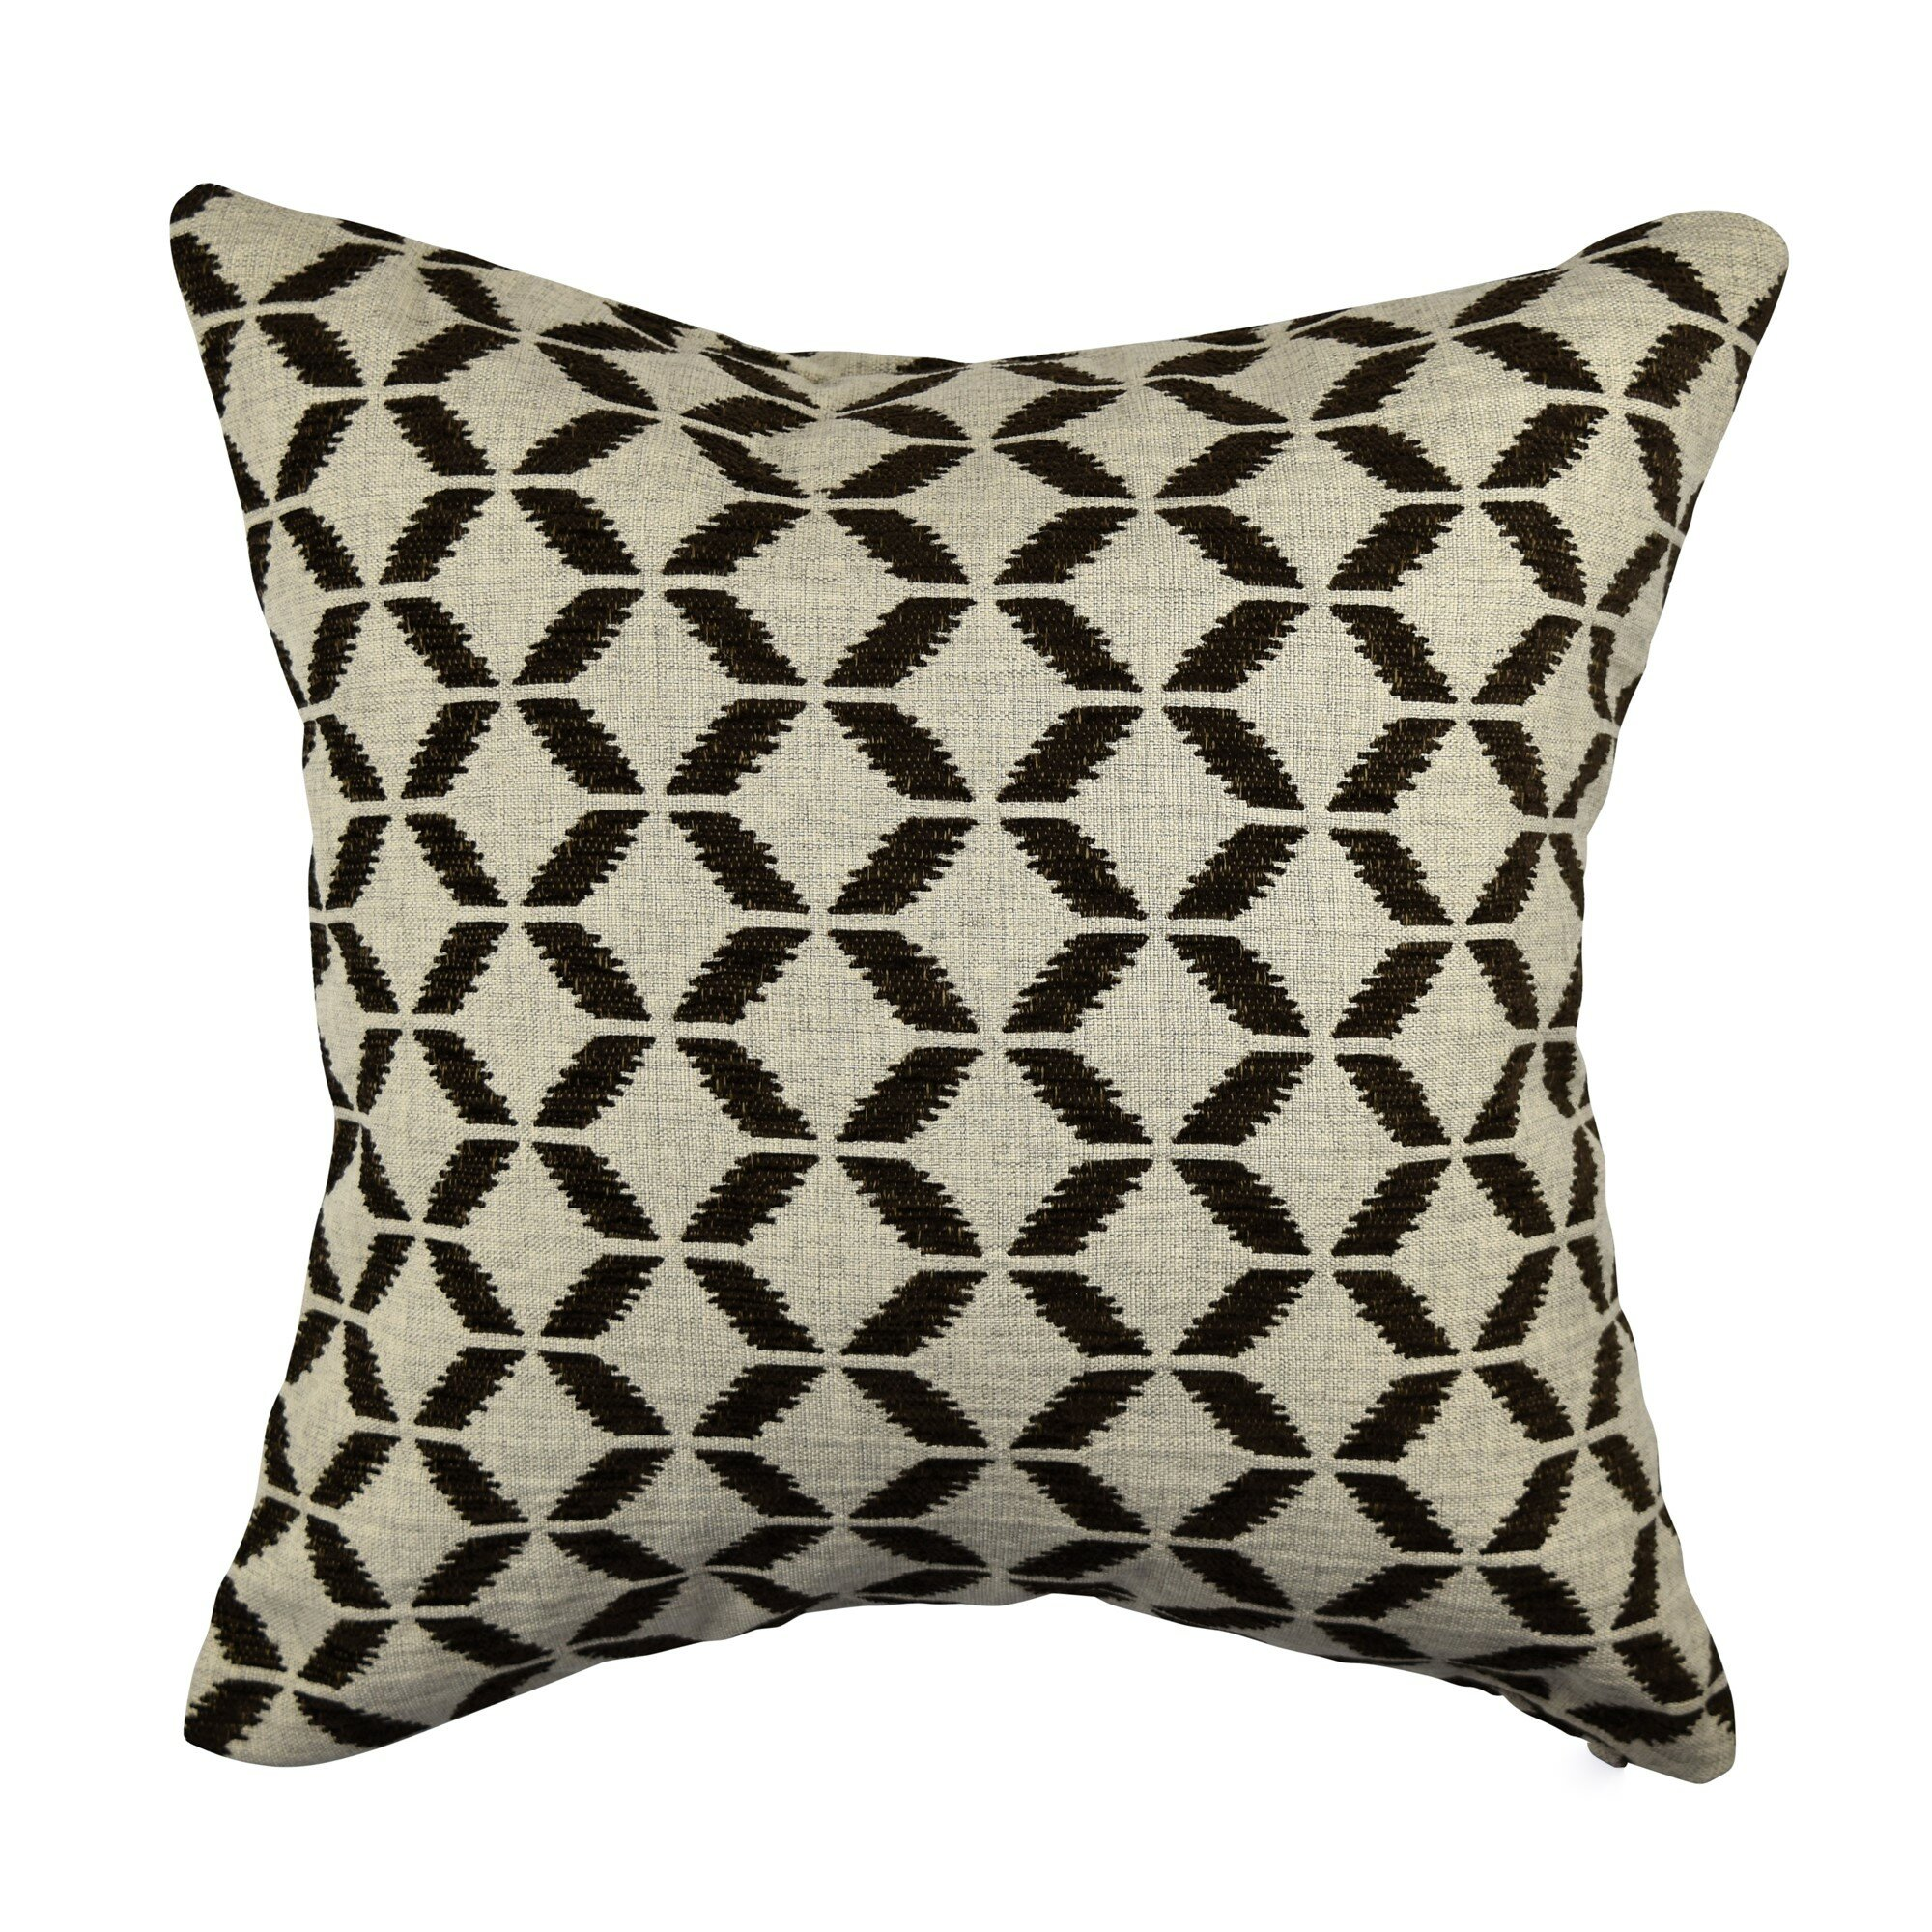 Vesper Lane Lillian August Home Scandinavian Jacquard Throw Pillow Wayfair